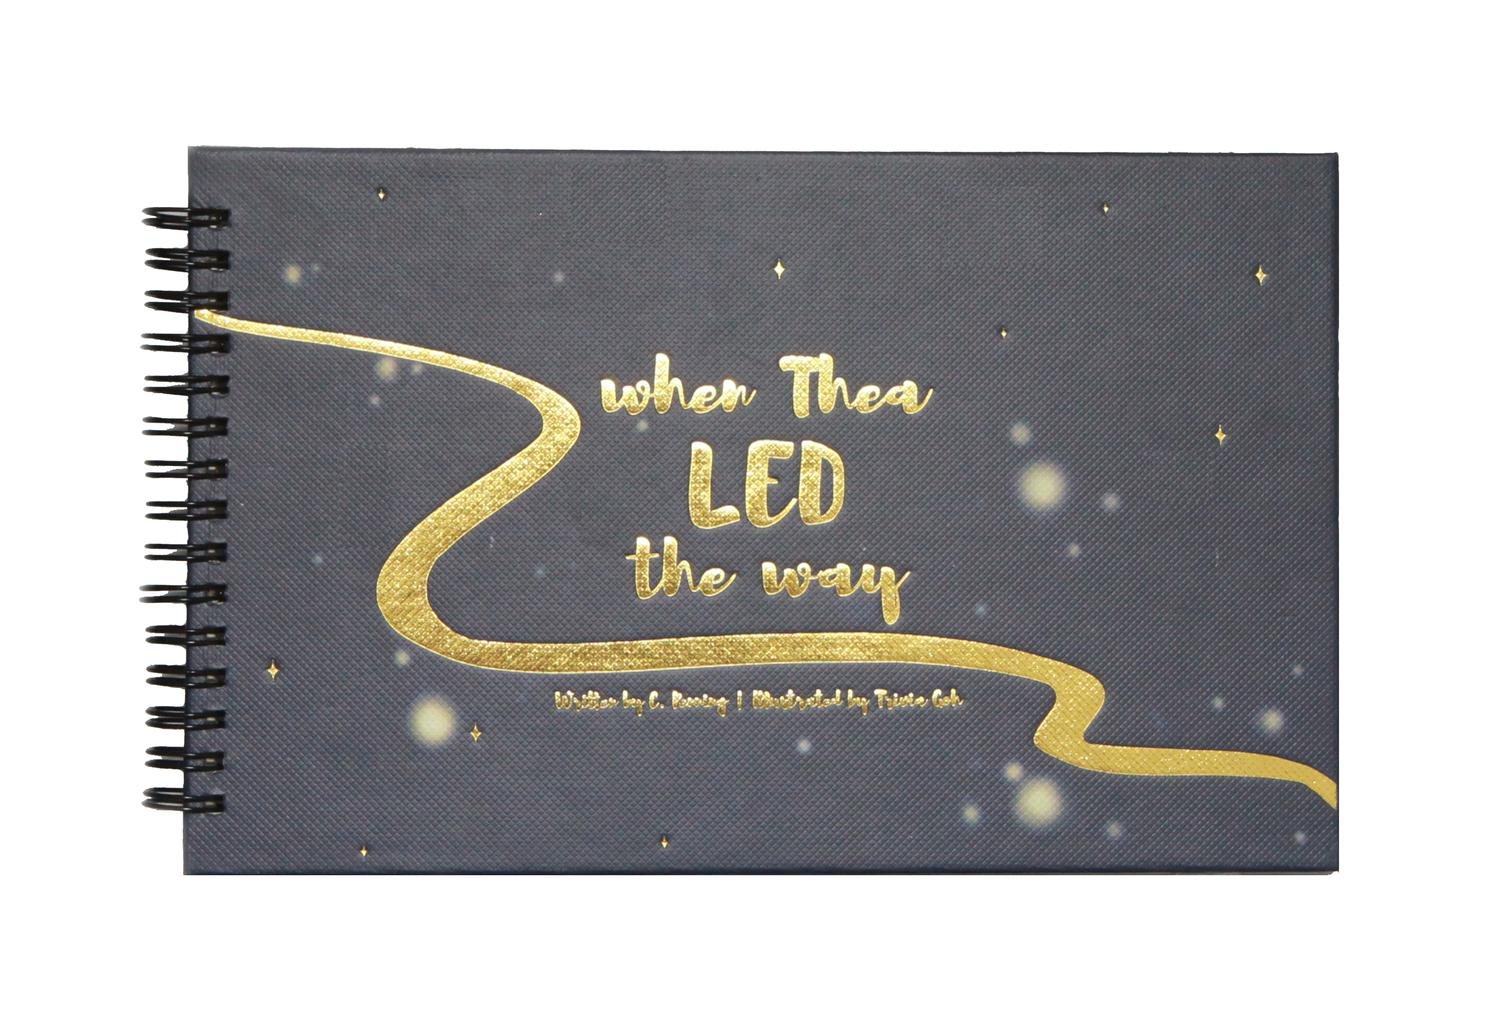 Steam Stories When Thea Led The Way Crowd Supply Circuits And Projects Blog Light Circuit